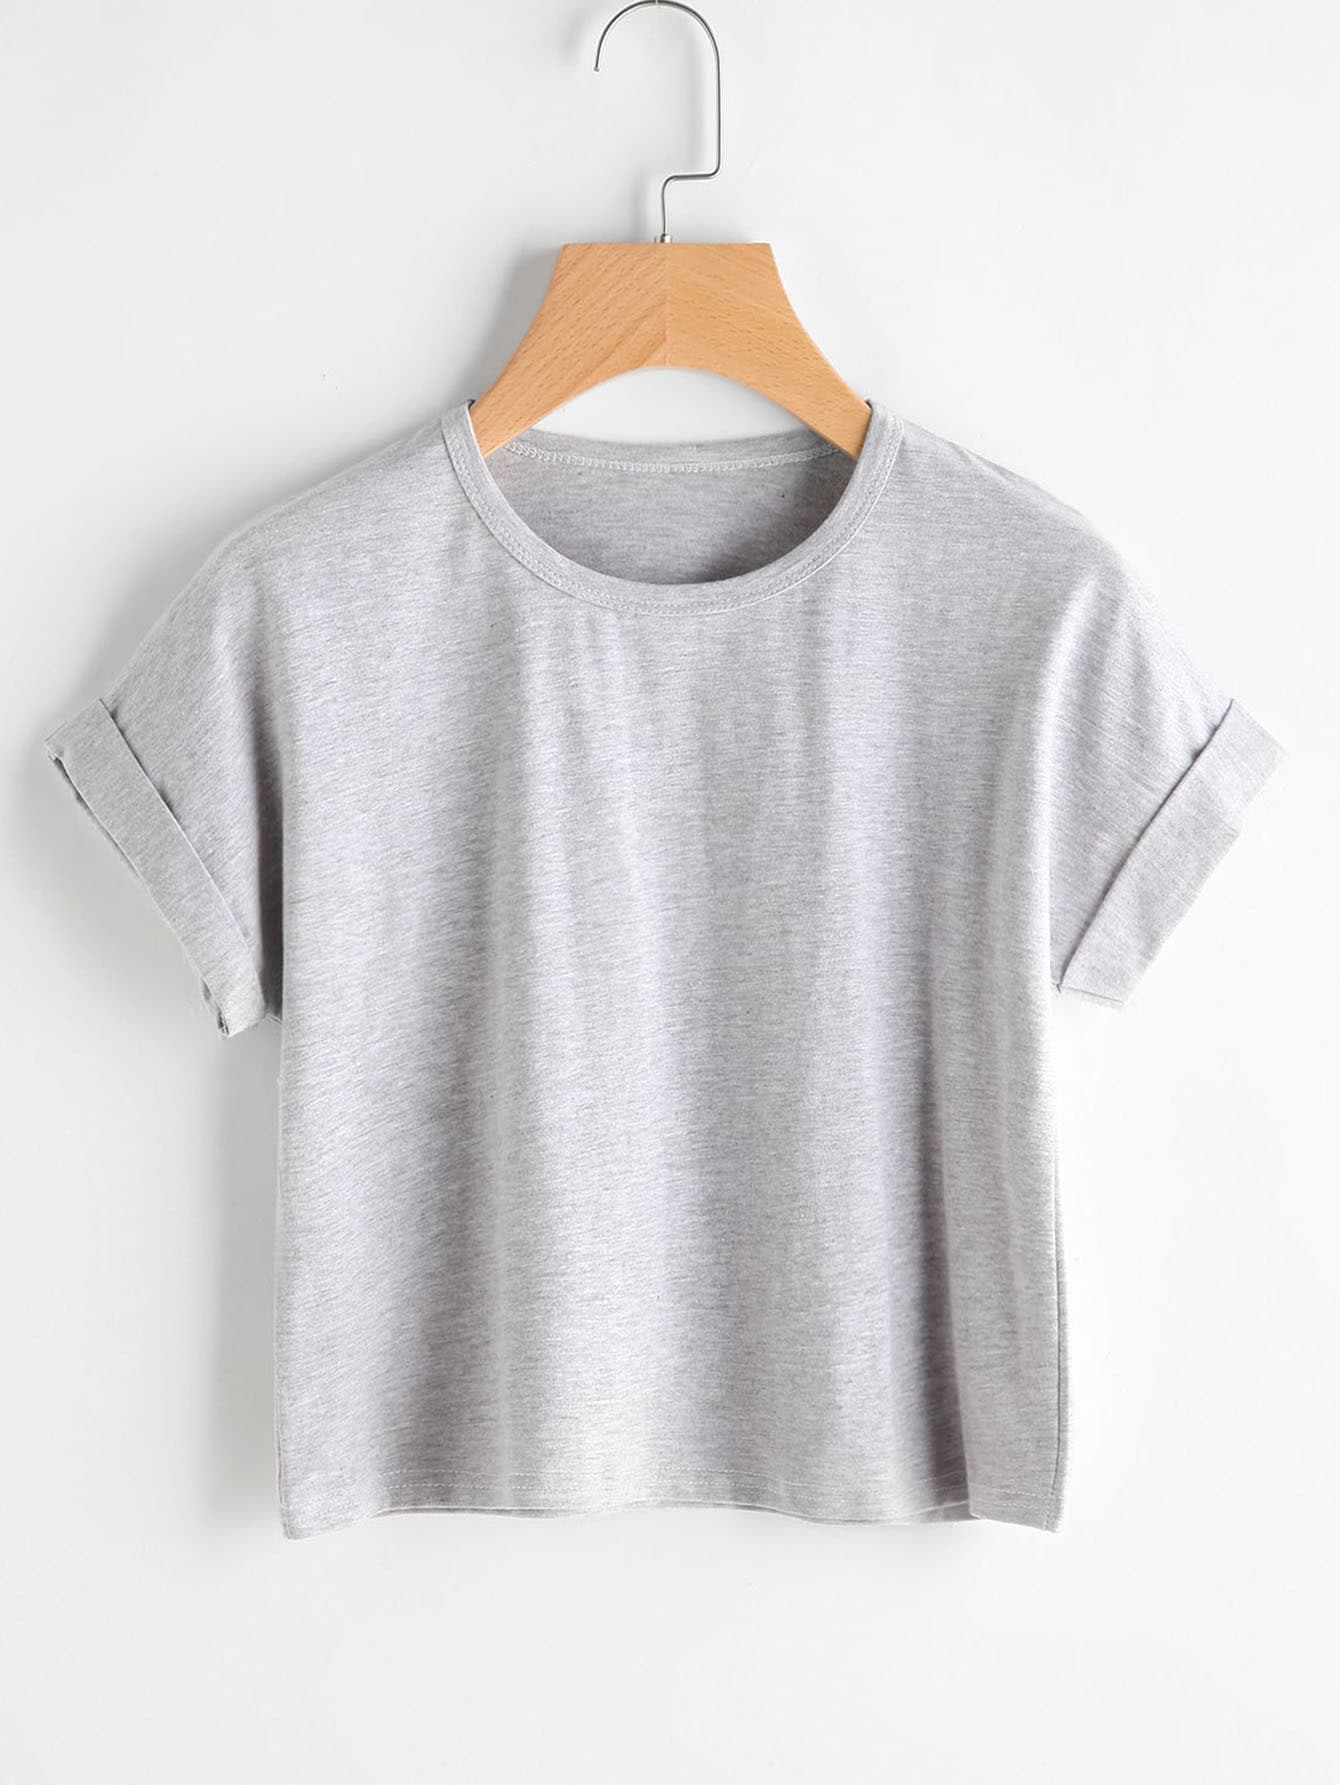 Cuffed Slub Tshirt round neck cropped t shirt